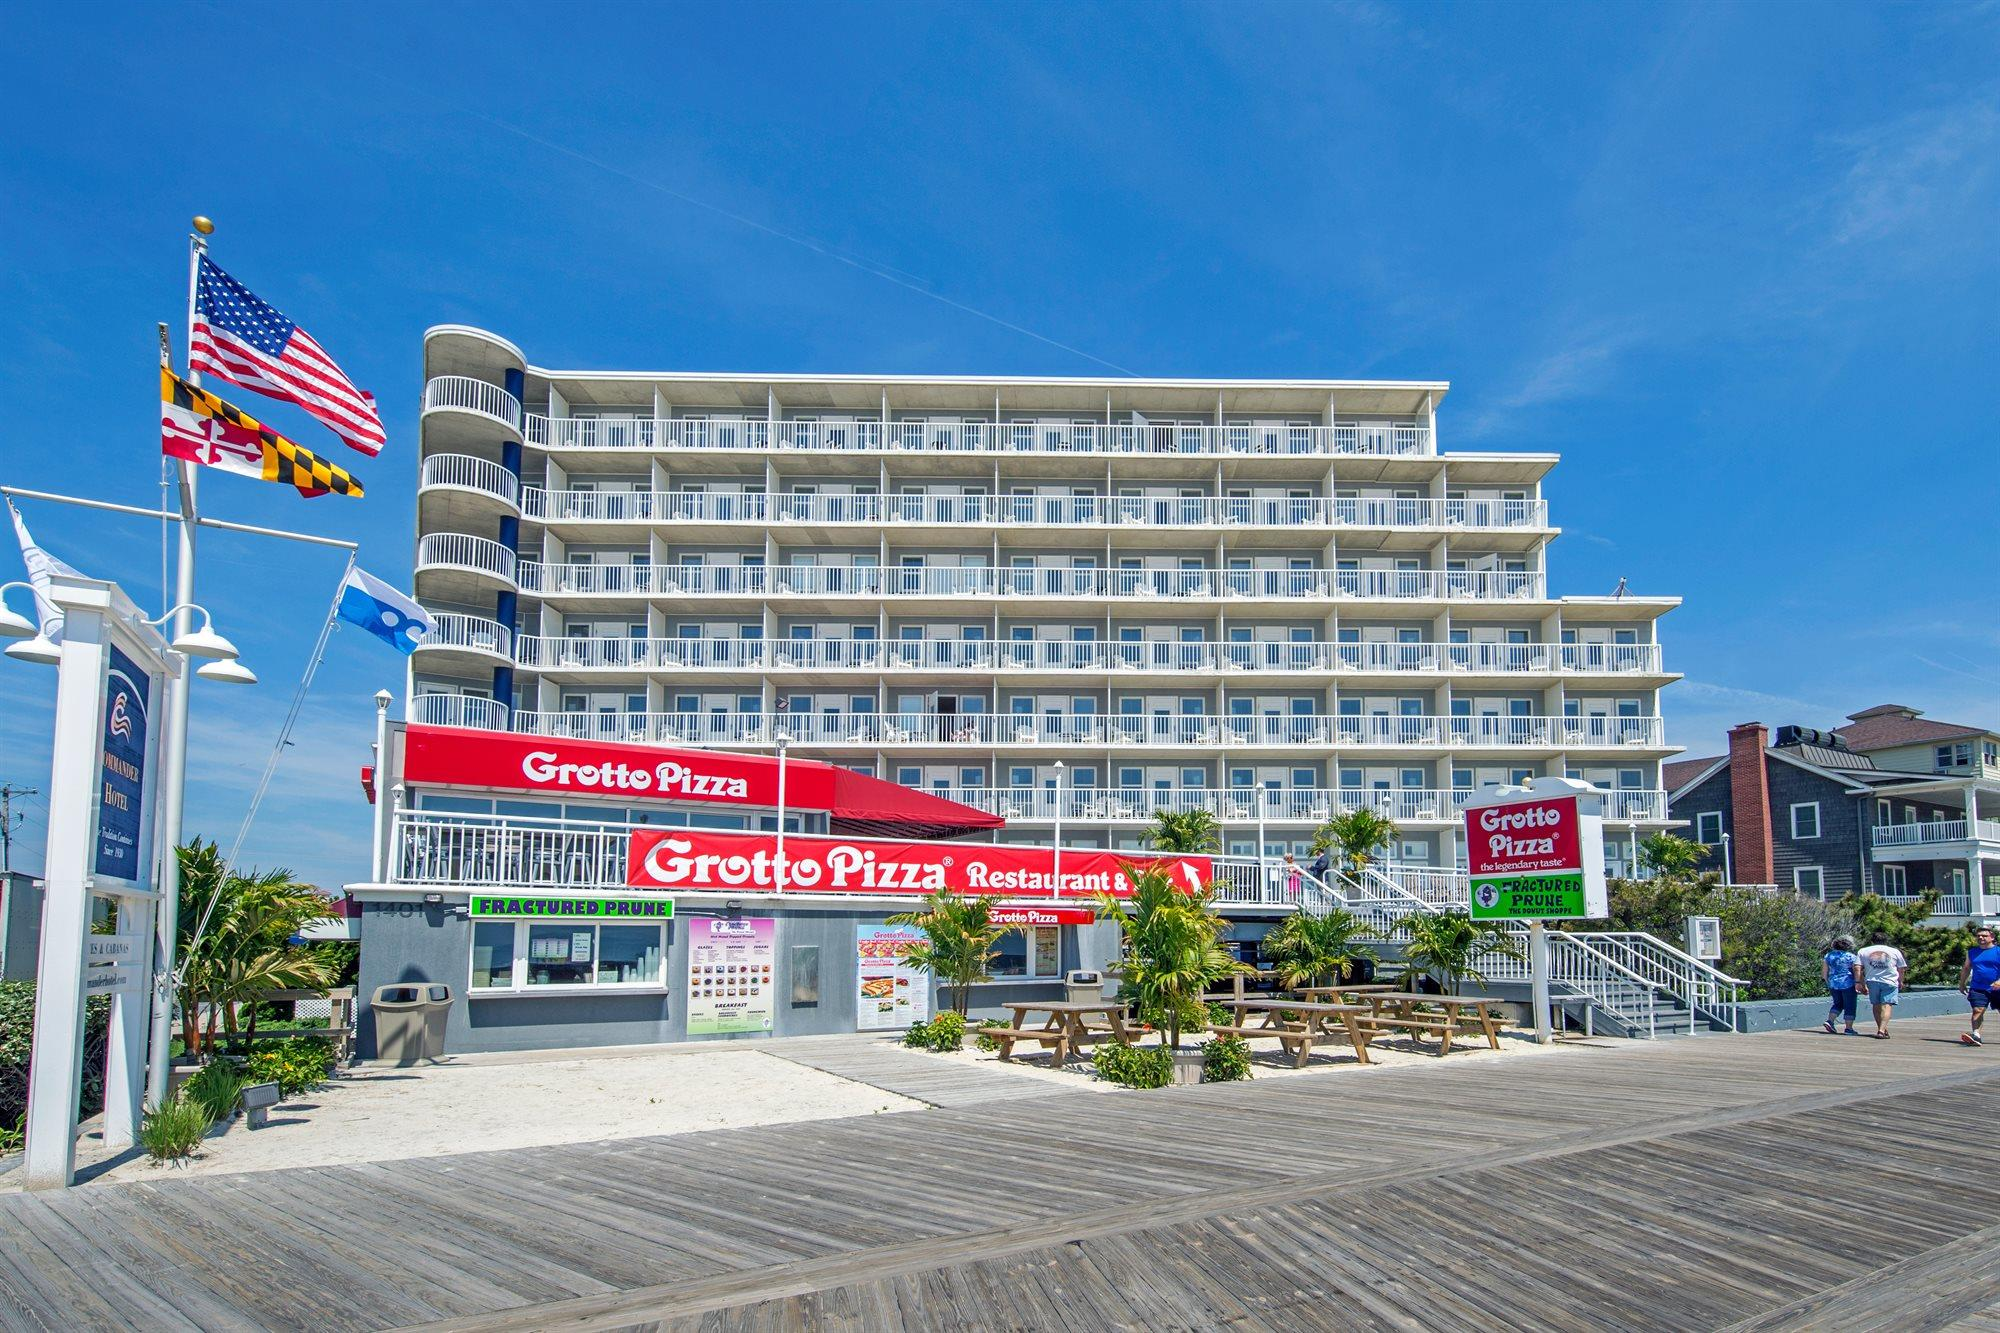 Hotel in Ocean City, Maryland